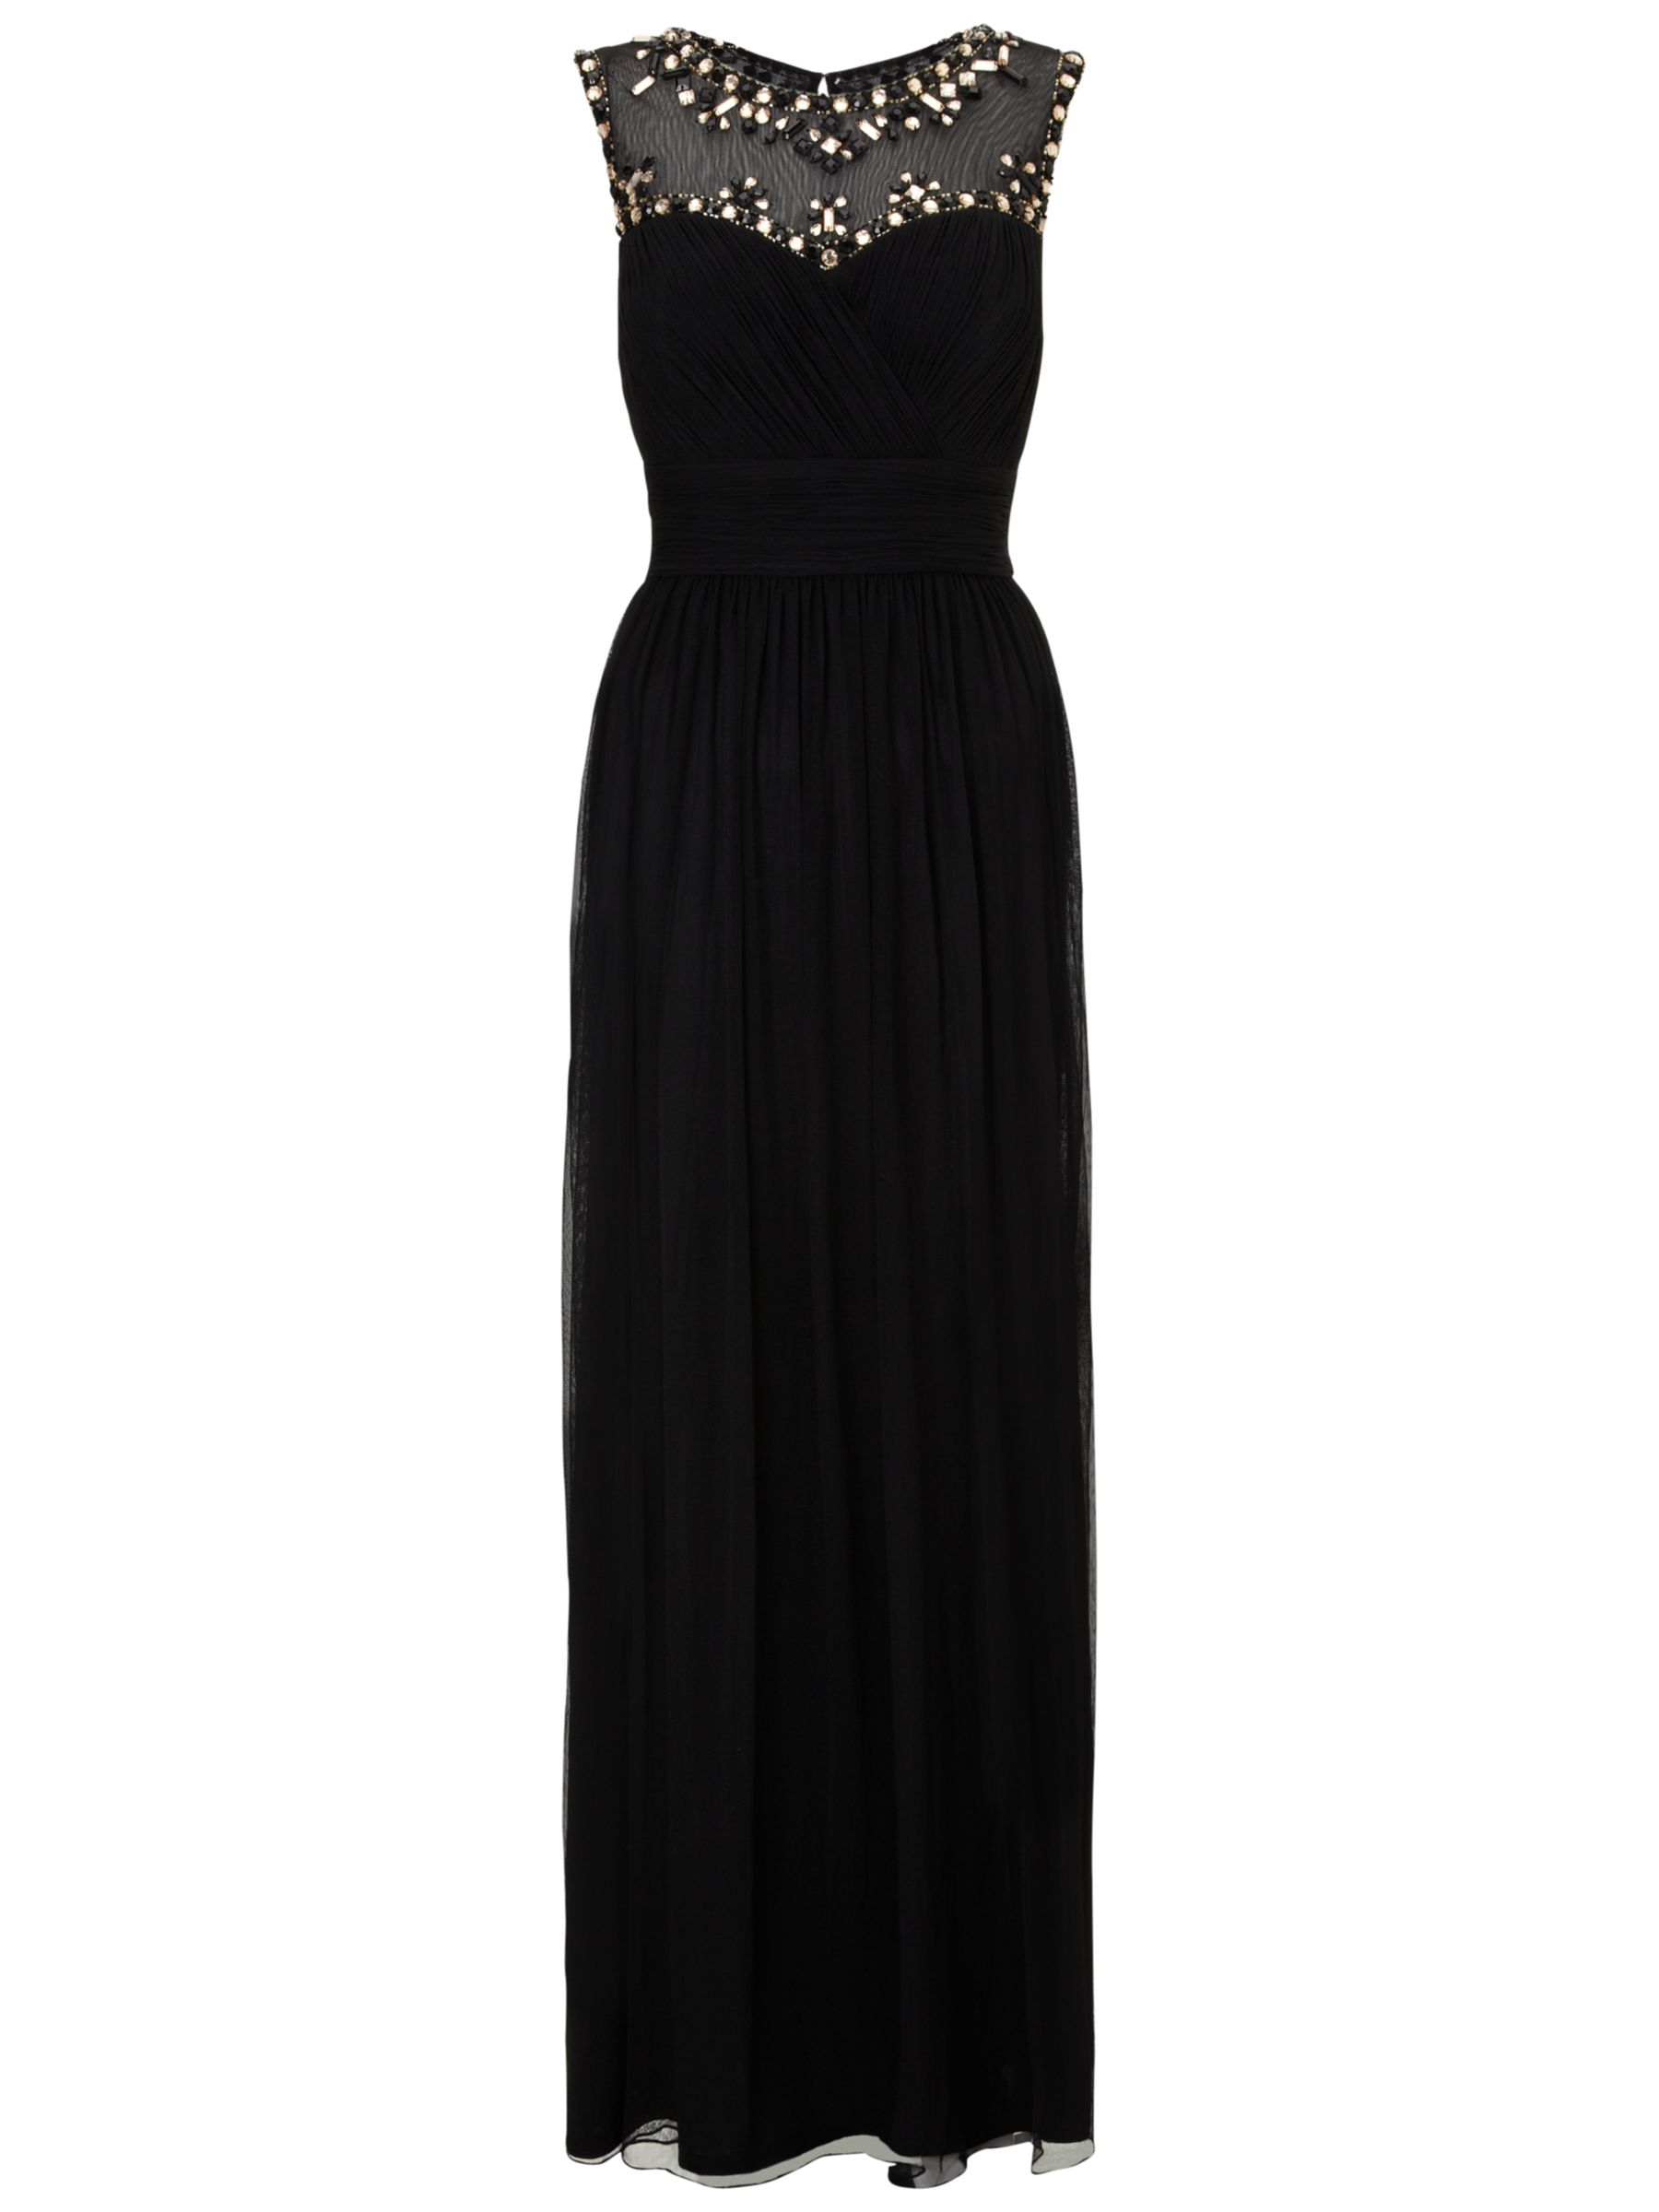 ariella talia mesh long dress black, ariella, talia, mesh, long, dress, black, 18|12|14|10|8, clearance, womenswear offers, womens dresses offers, women, inactive womenswear, new reductions, womens dresses, special offers, 1619506